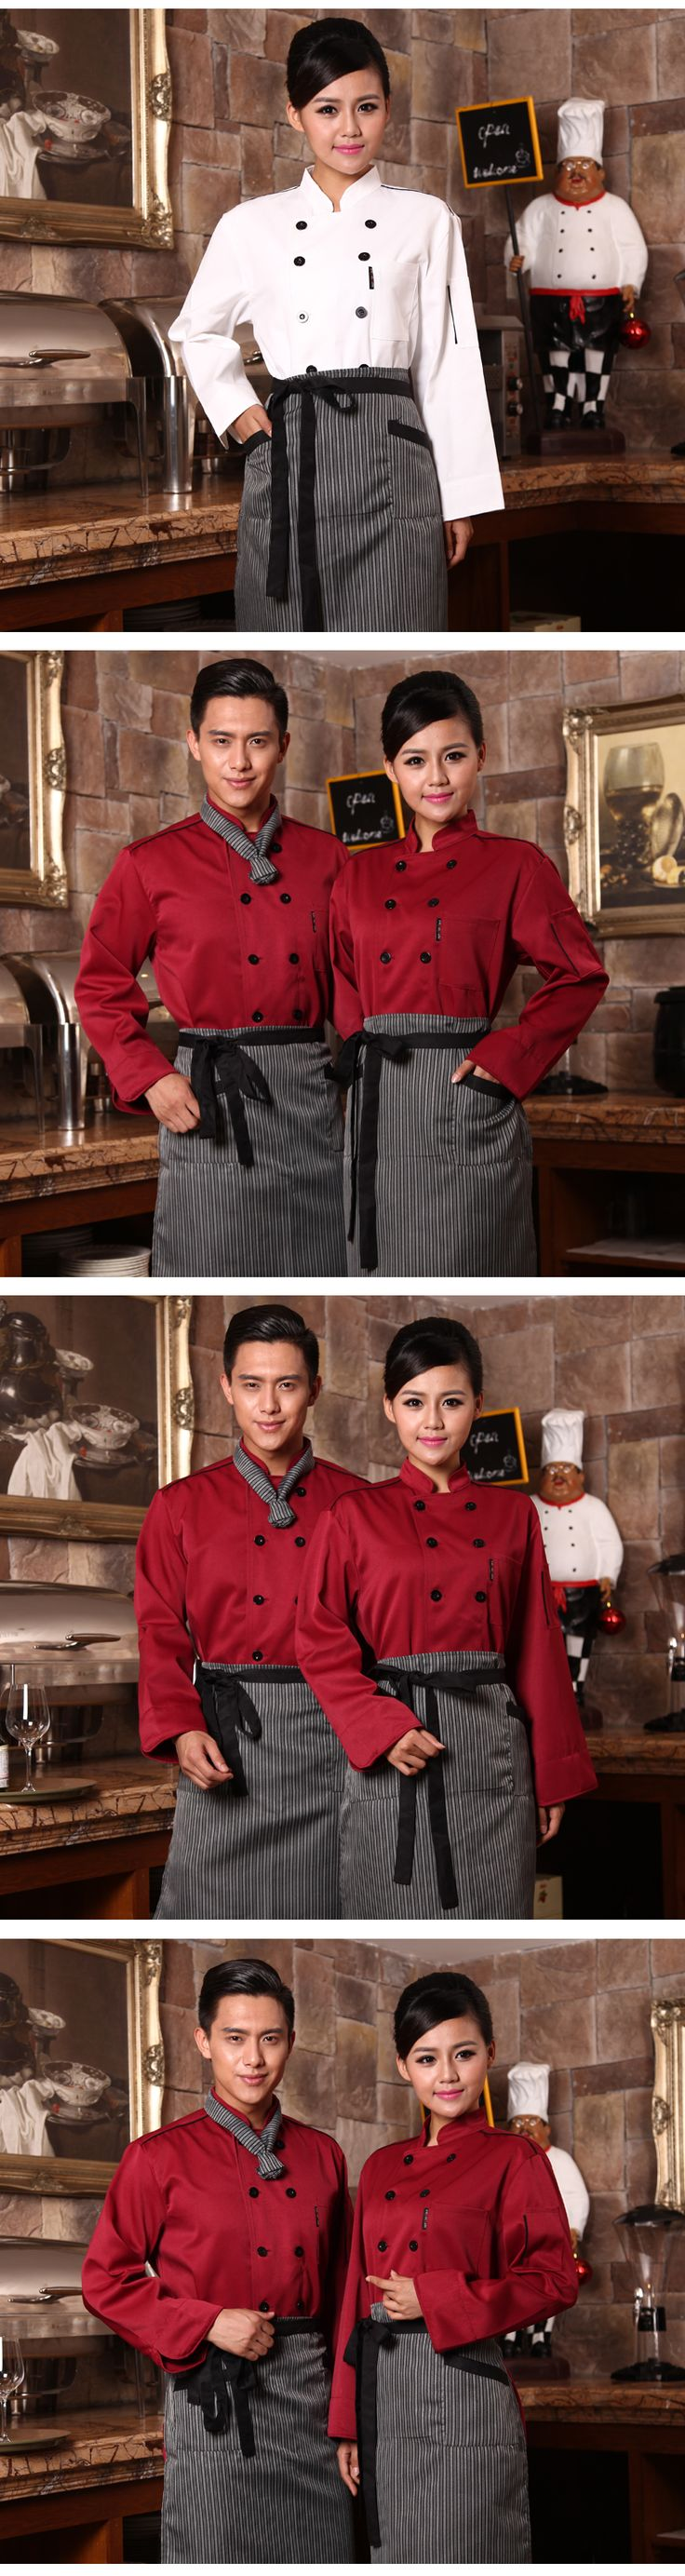 Russian classic restaurant chef uniform fashion design - UniformSELL